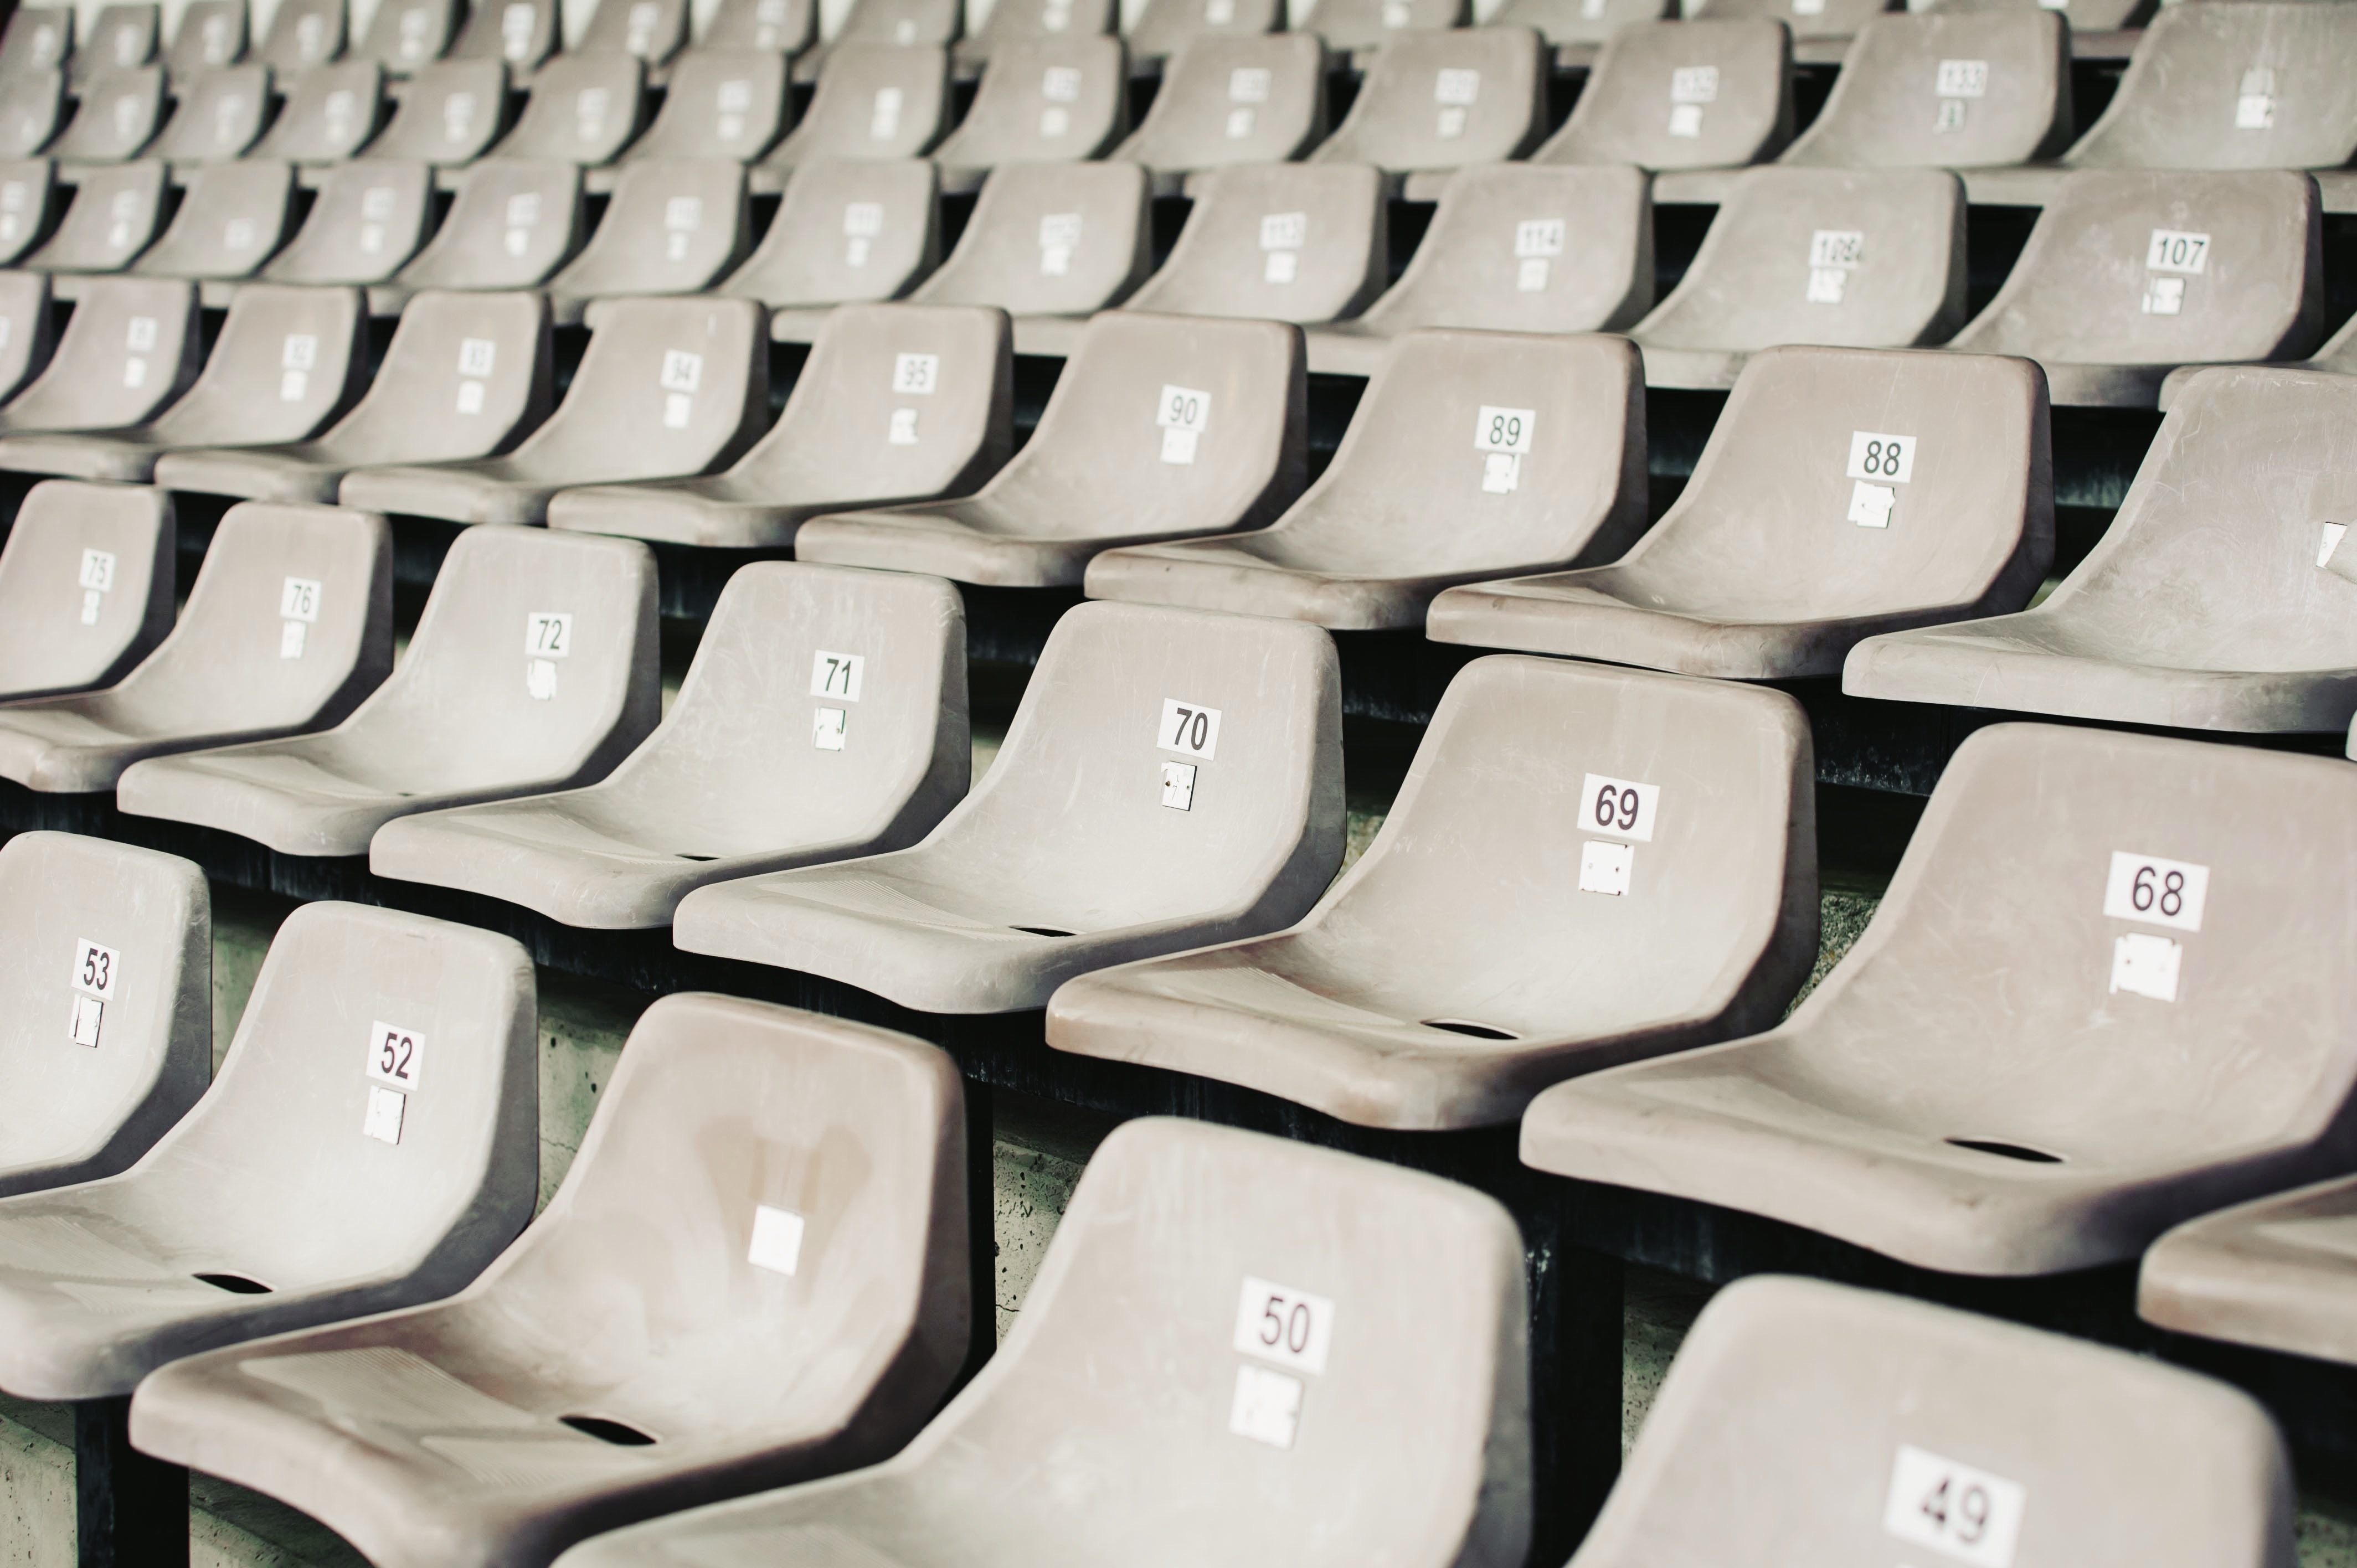 Numbered seats in a sports stadium